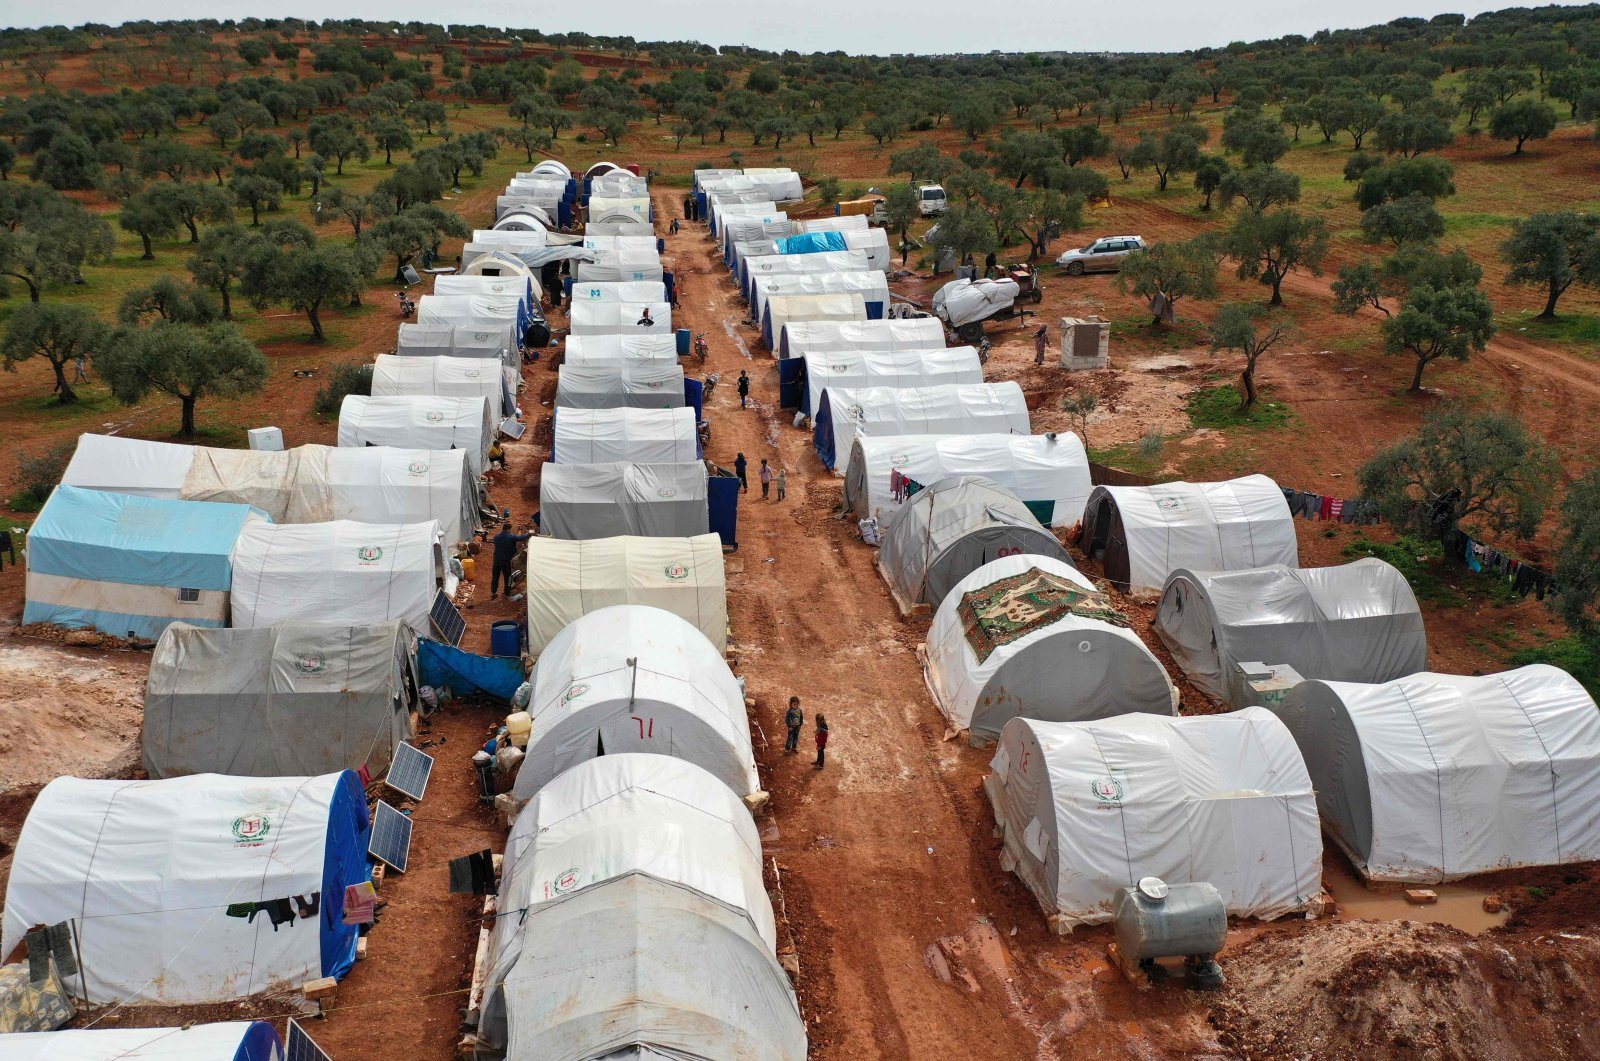 An aerial view of a camp for displaced Syrians from Idlib and Aleppo provinces, near the town of Maaret Misrin in Syria's northwestern Idlib province, Sunday, April 5, 2020. (AFP Photo)